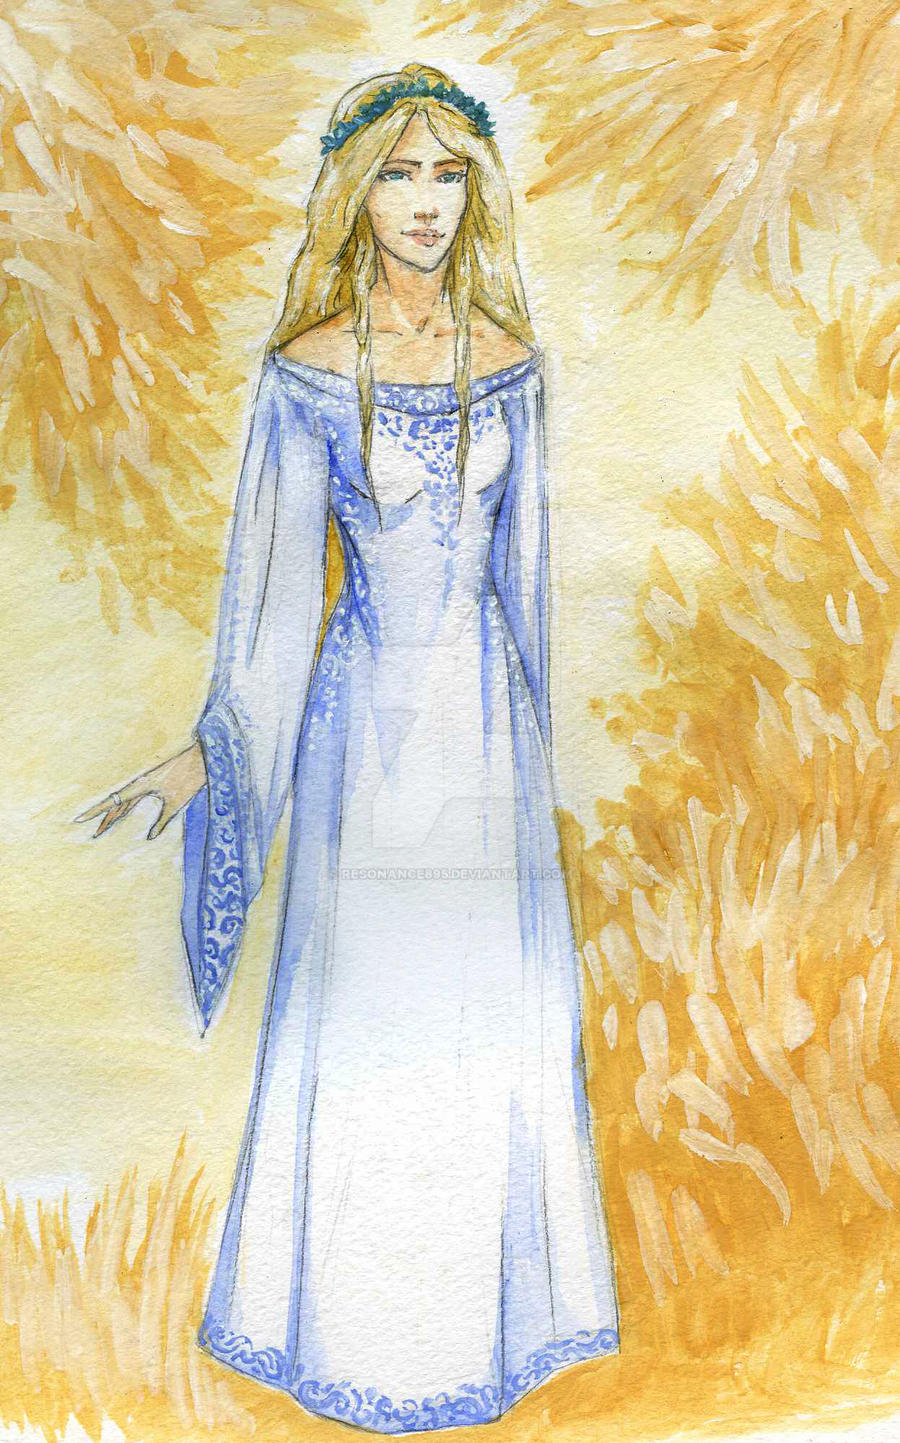 Galadriel by resonance895